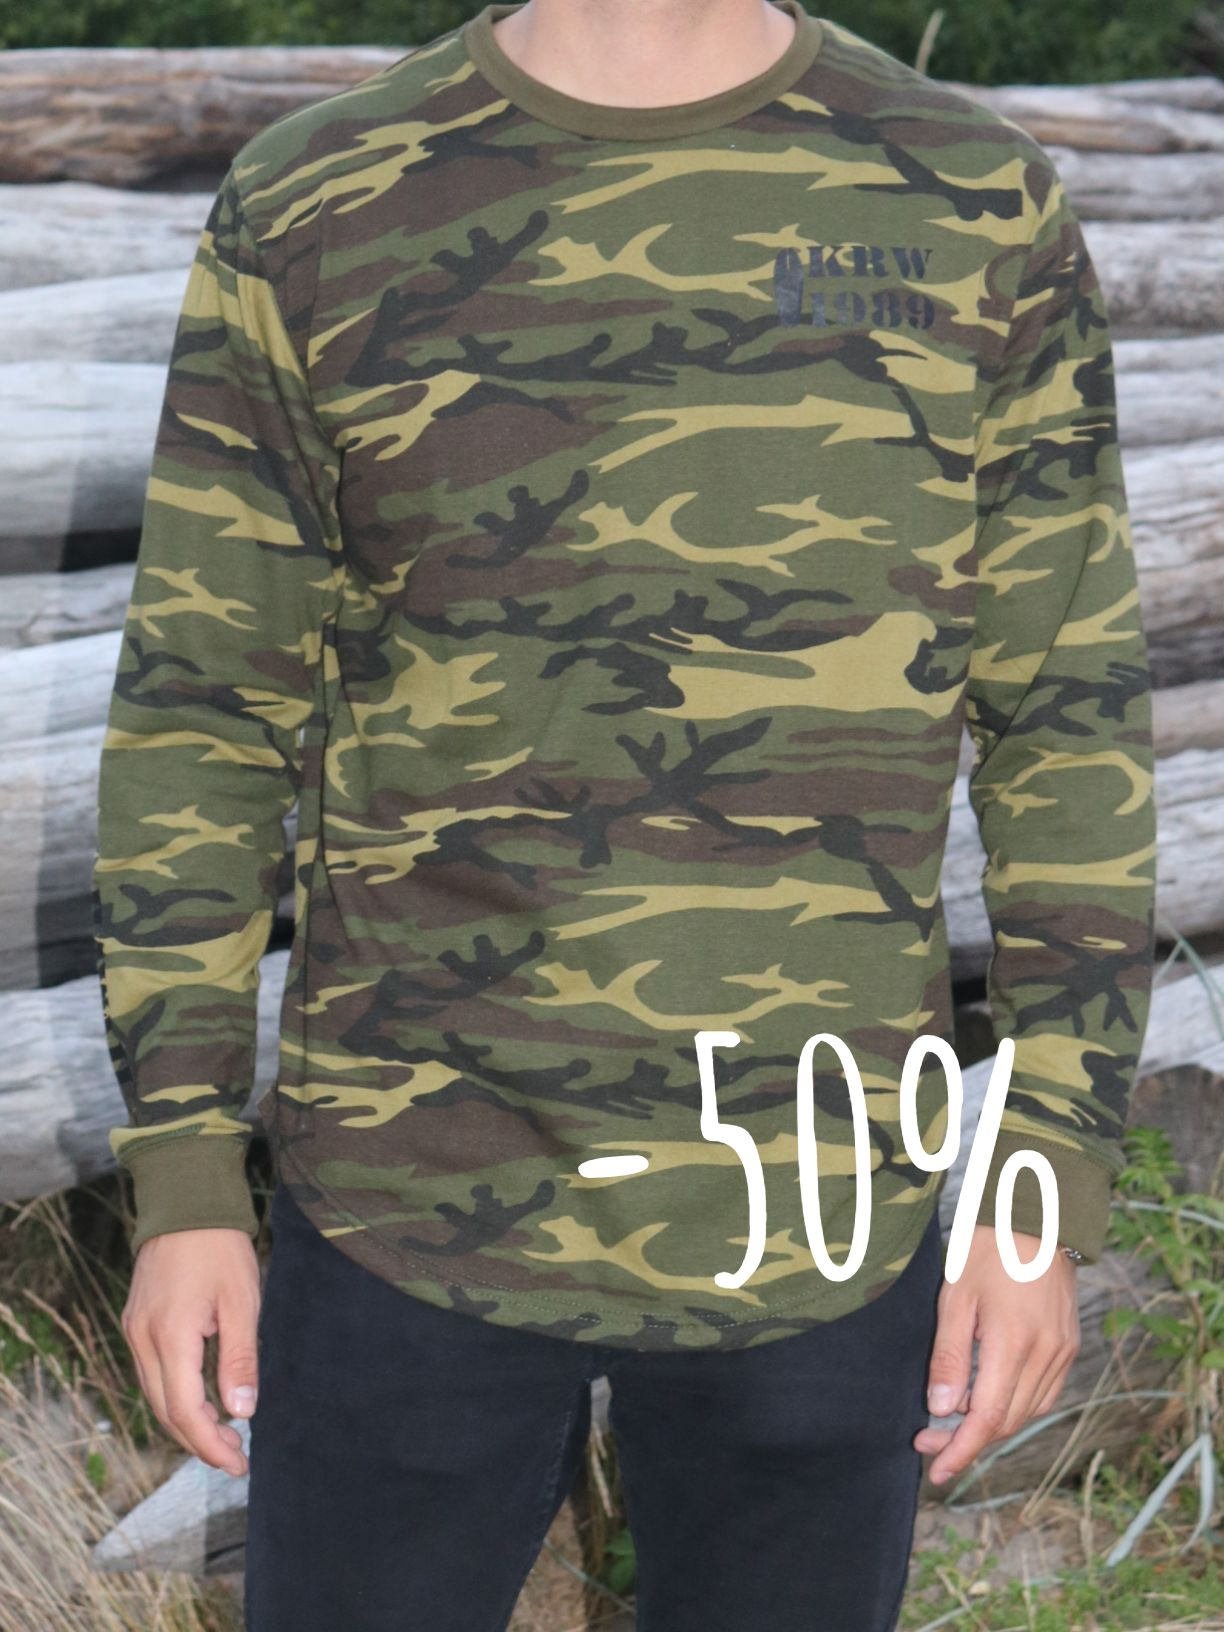 Klitmøller Camou shirt - GET 50% NOW